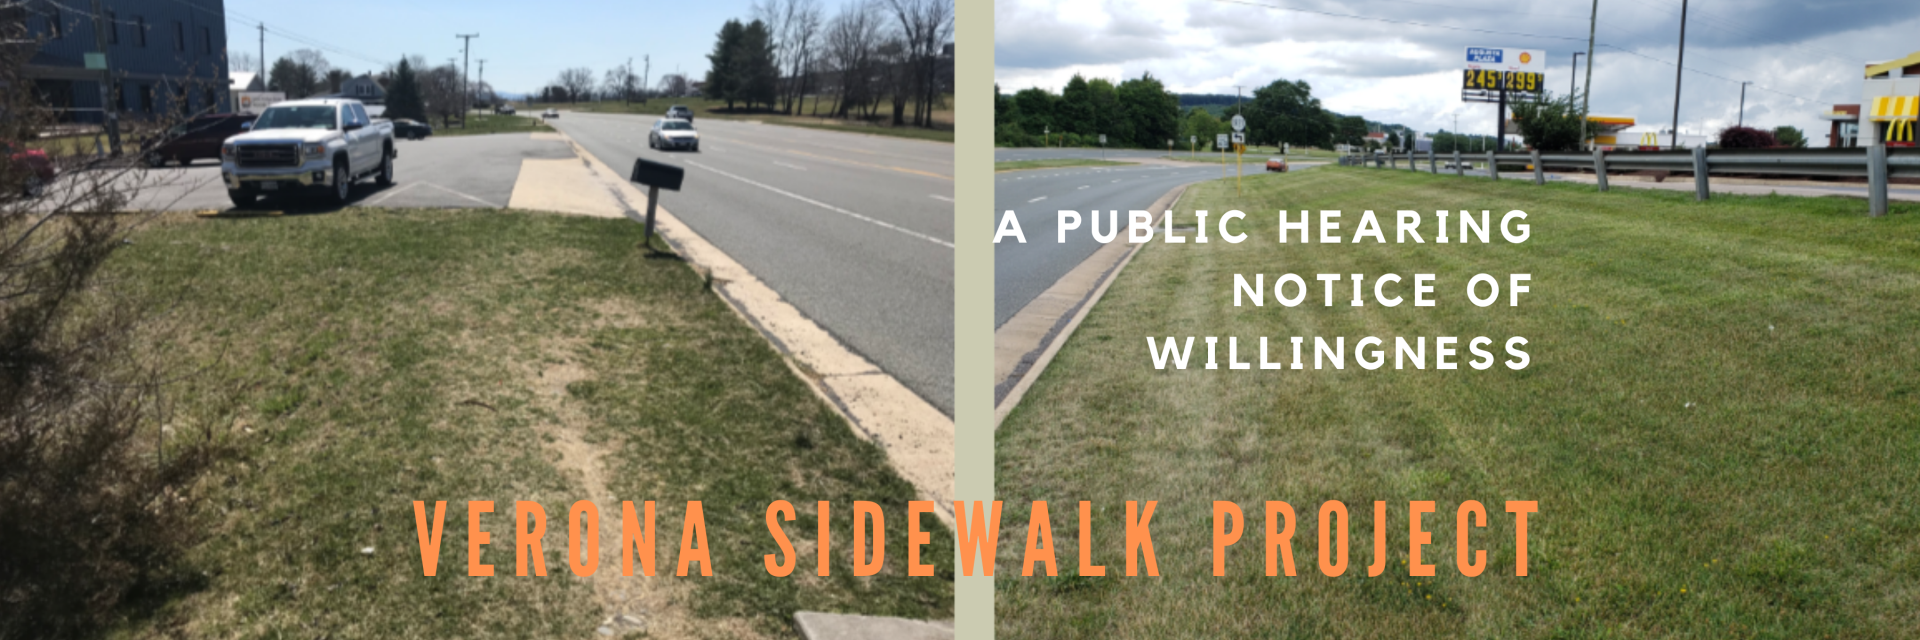 Verona Sidewalk Project Plans Released for Public Input